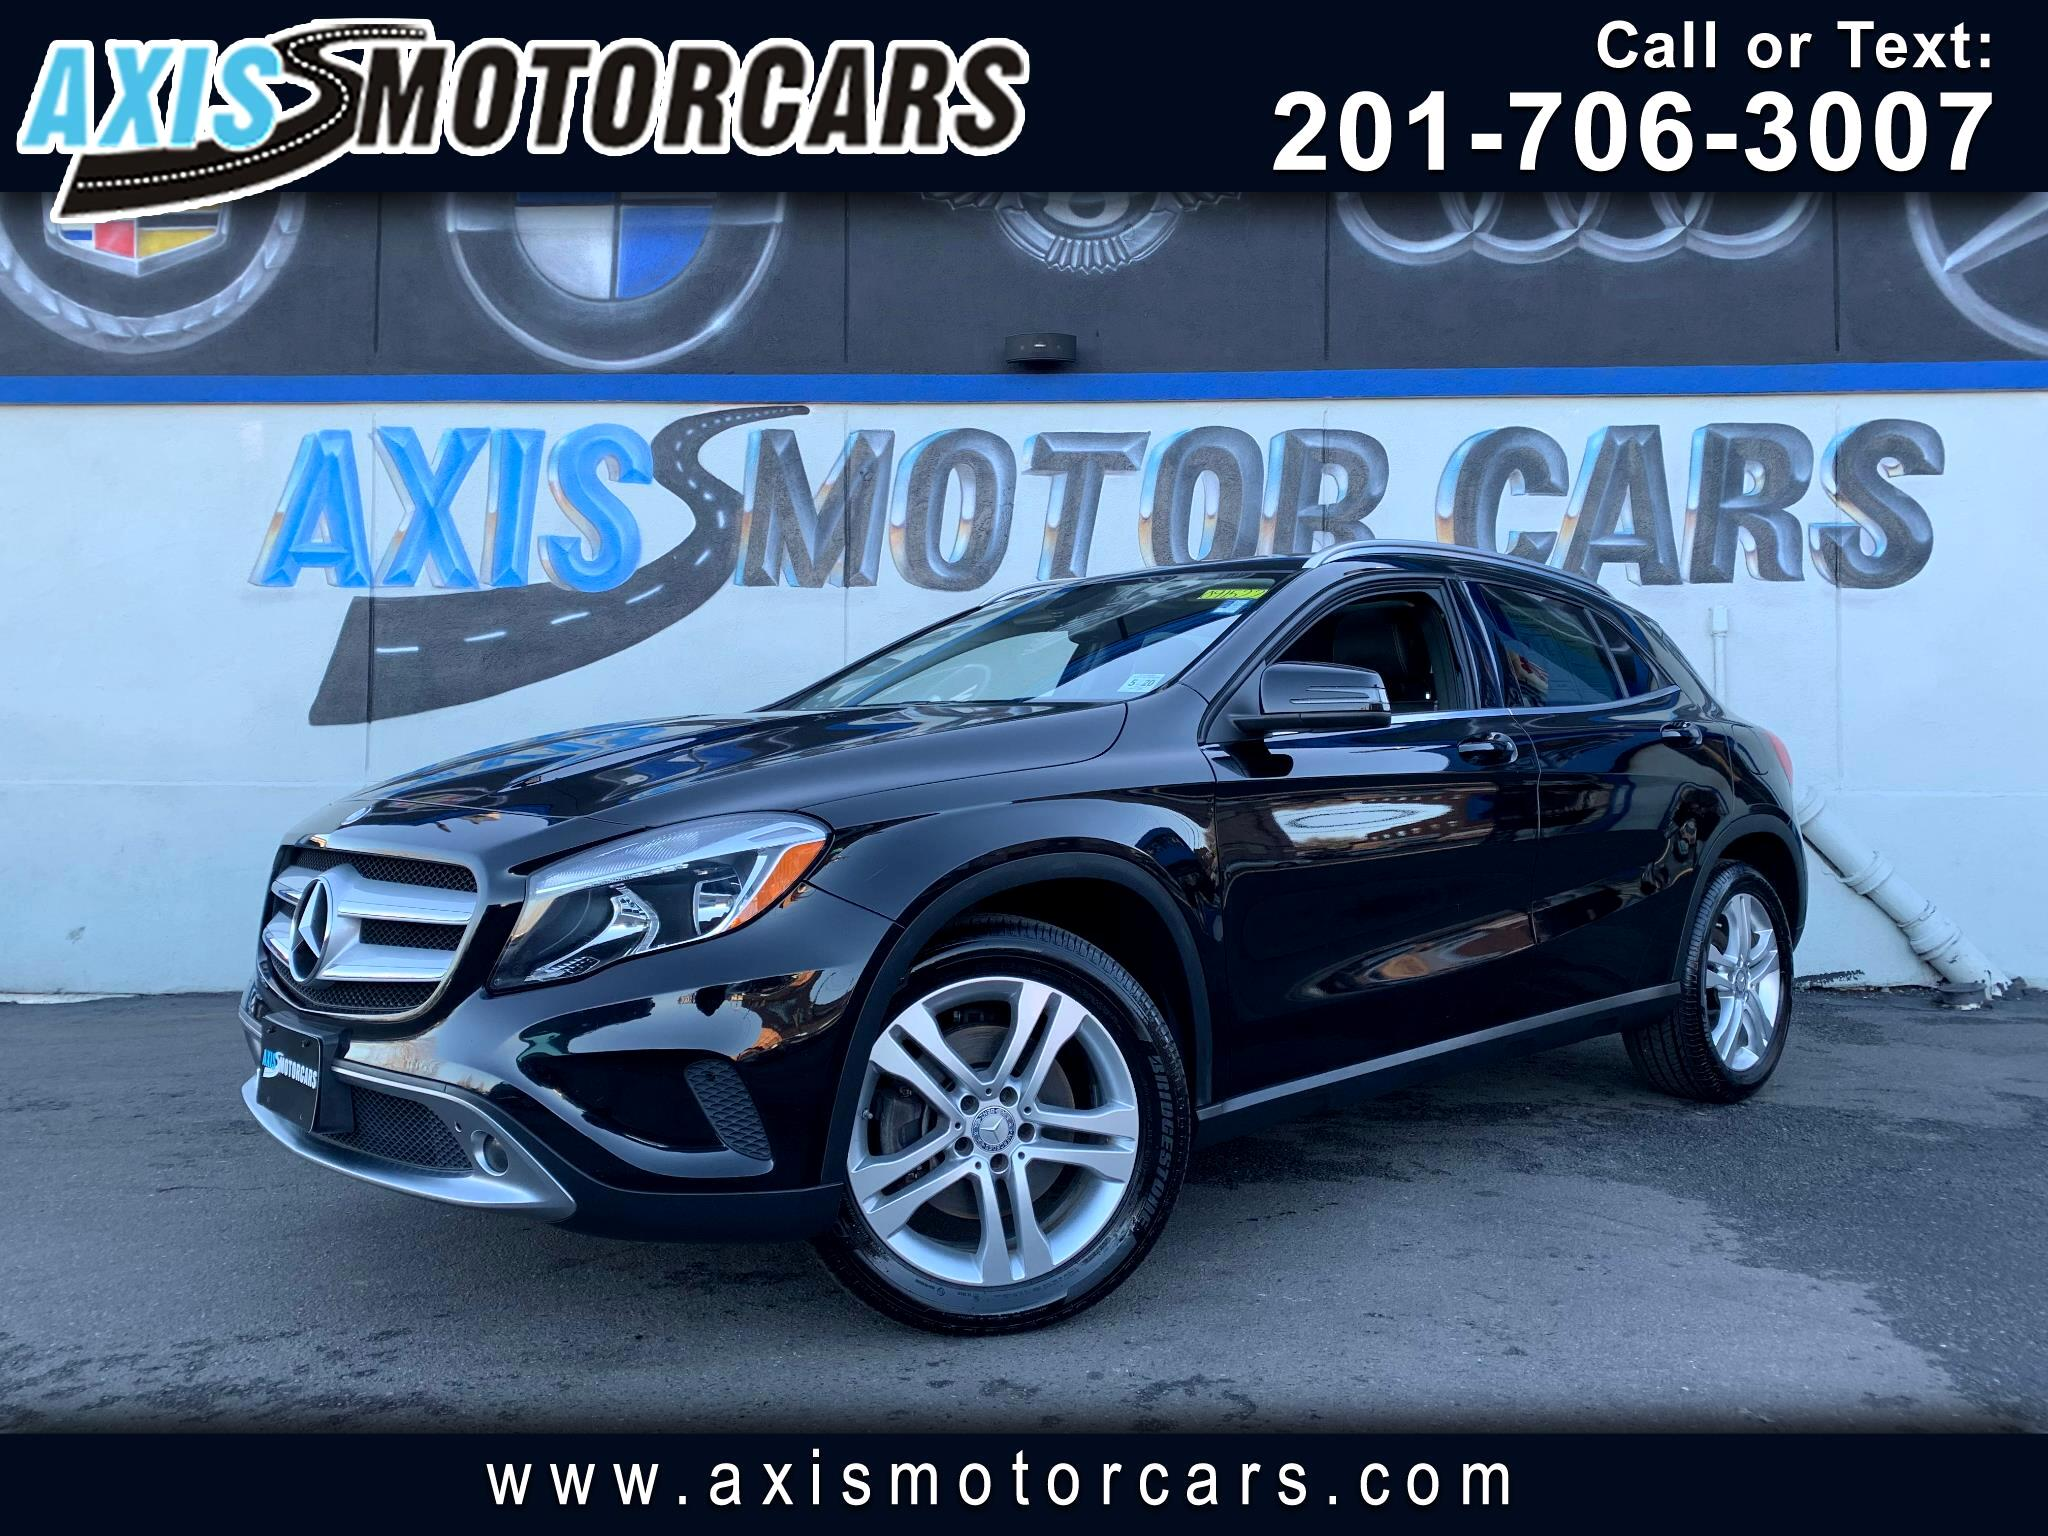 2015 Mercedes-Benz GLA 250 4MATIC w/Navigation Panoramic Roof